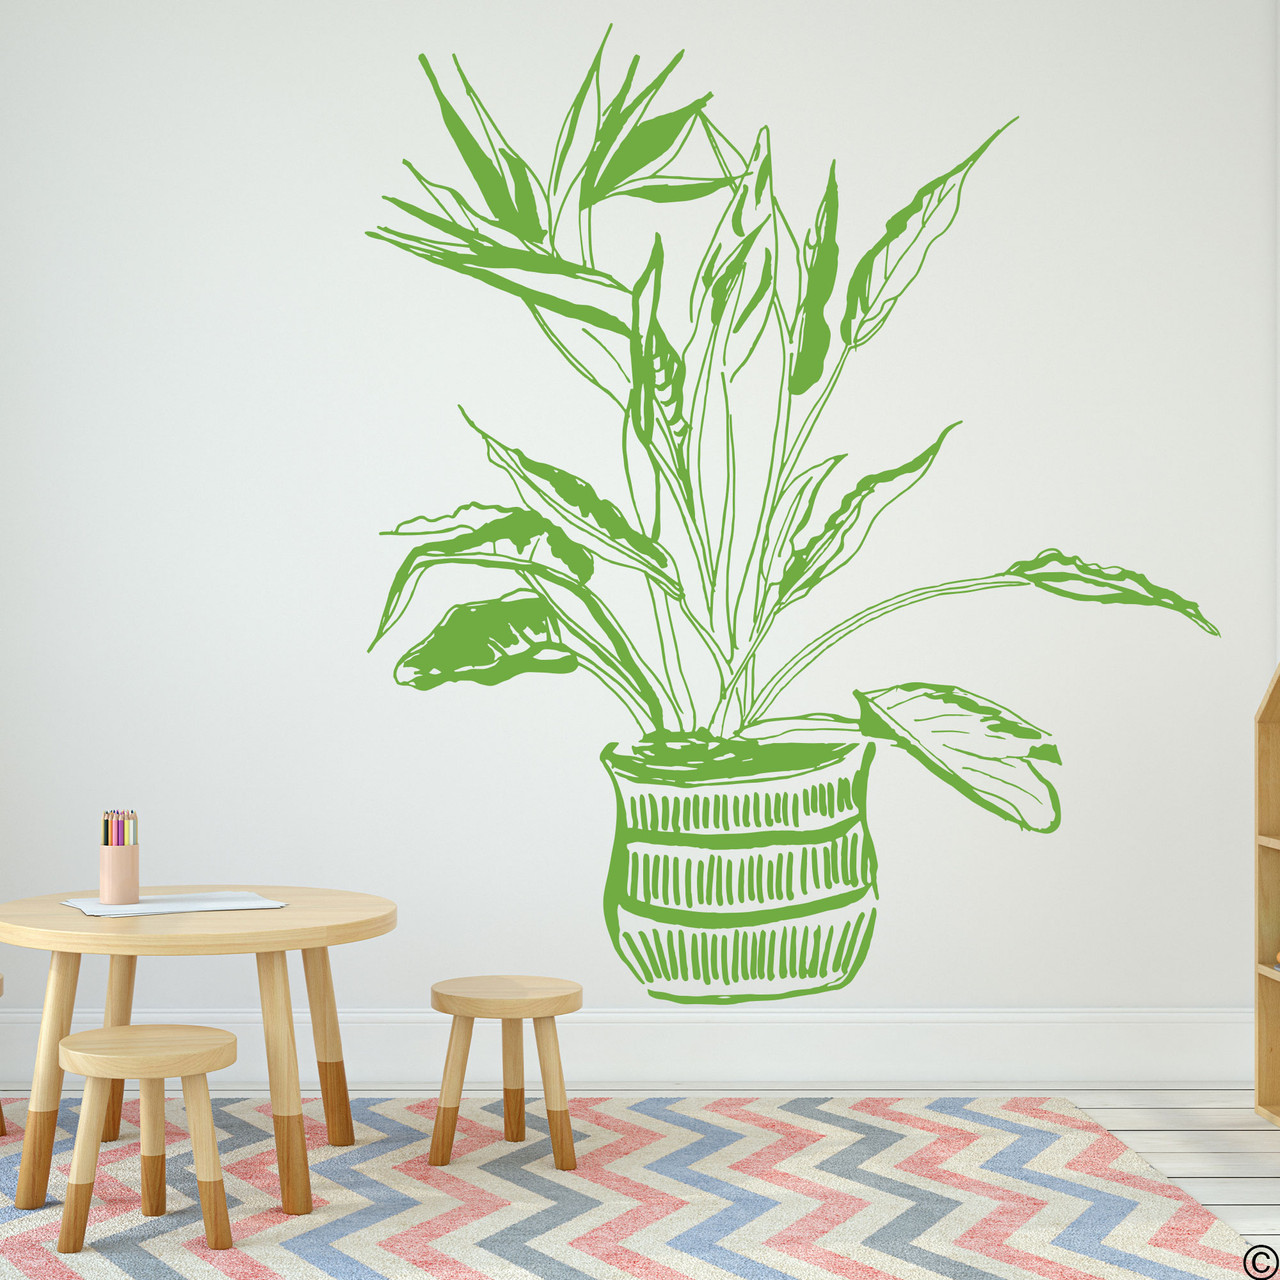 The hand drawn Bird of Paradise potted plant wall decal in the green vinyl color.